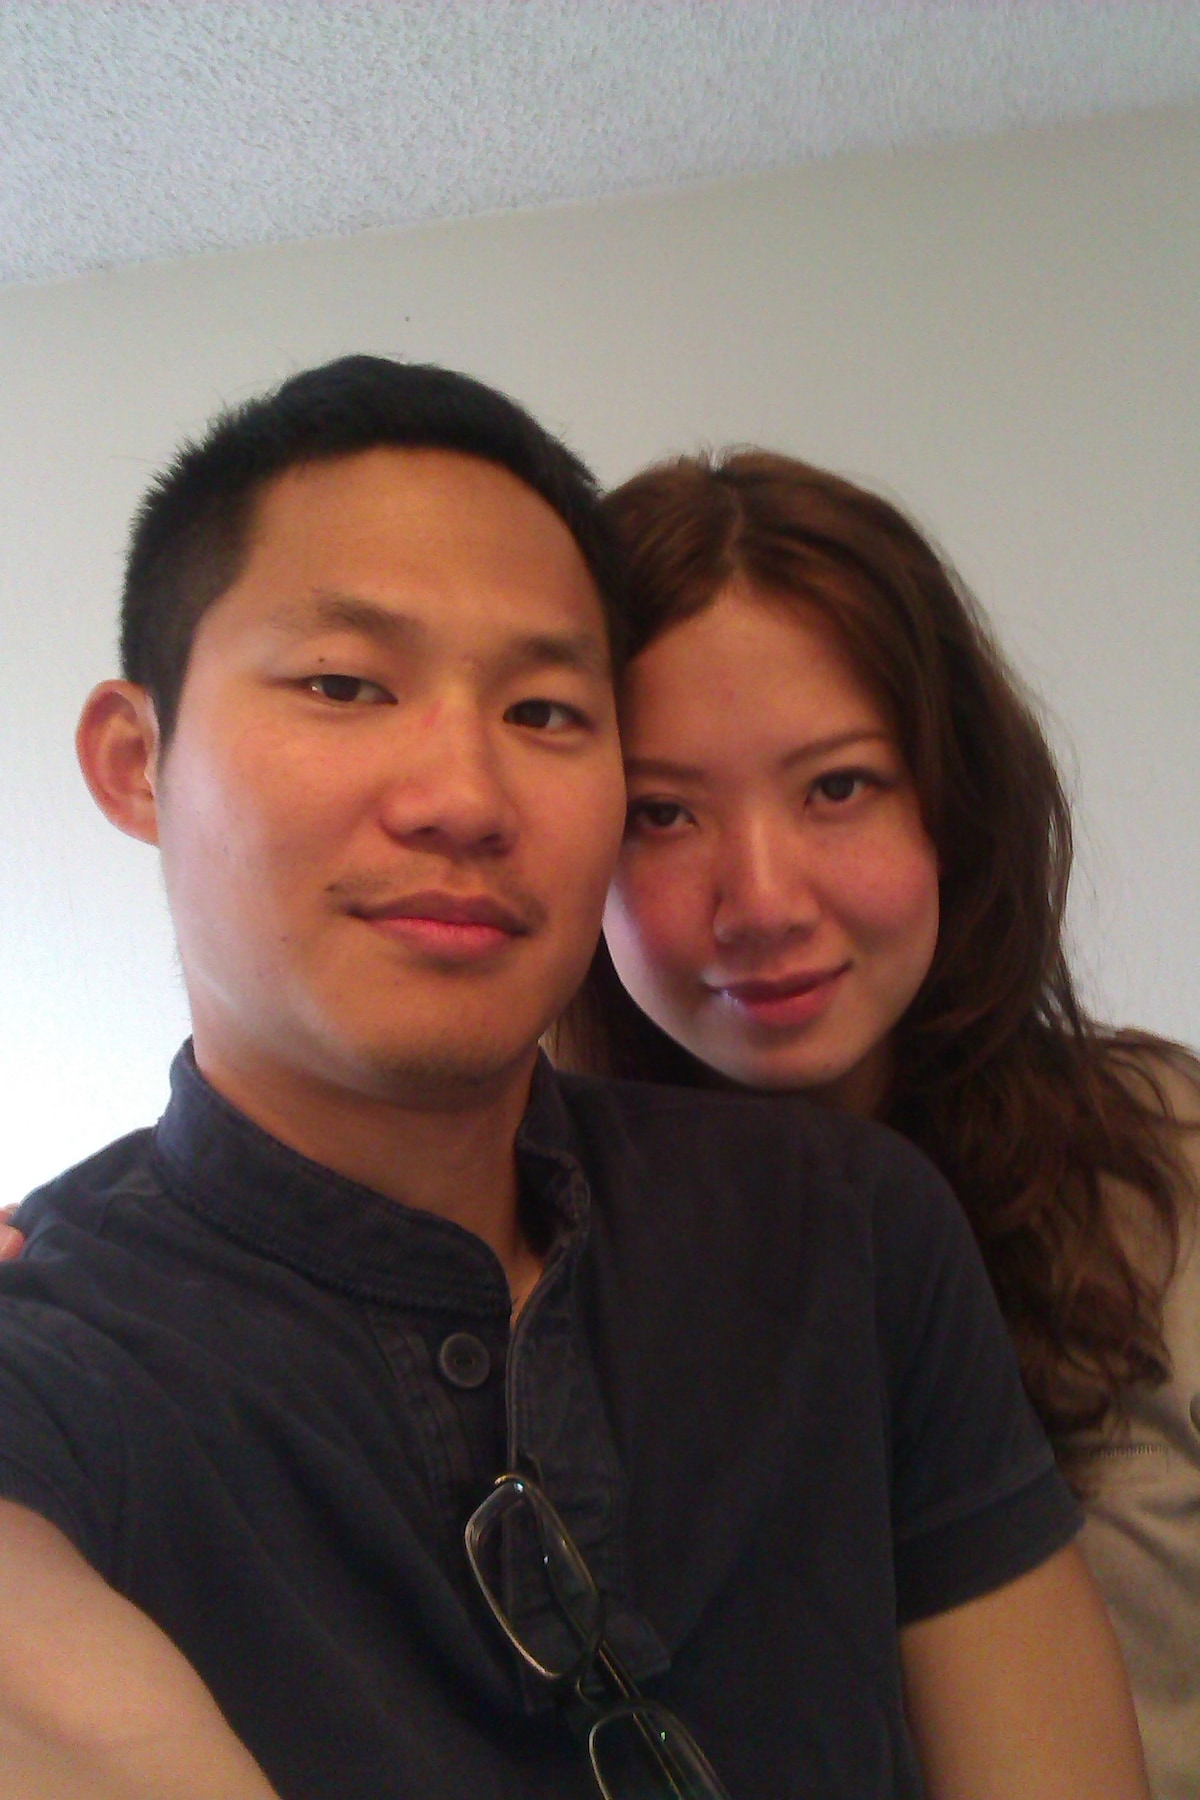 We are couple living in Emeryville, this is a styl